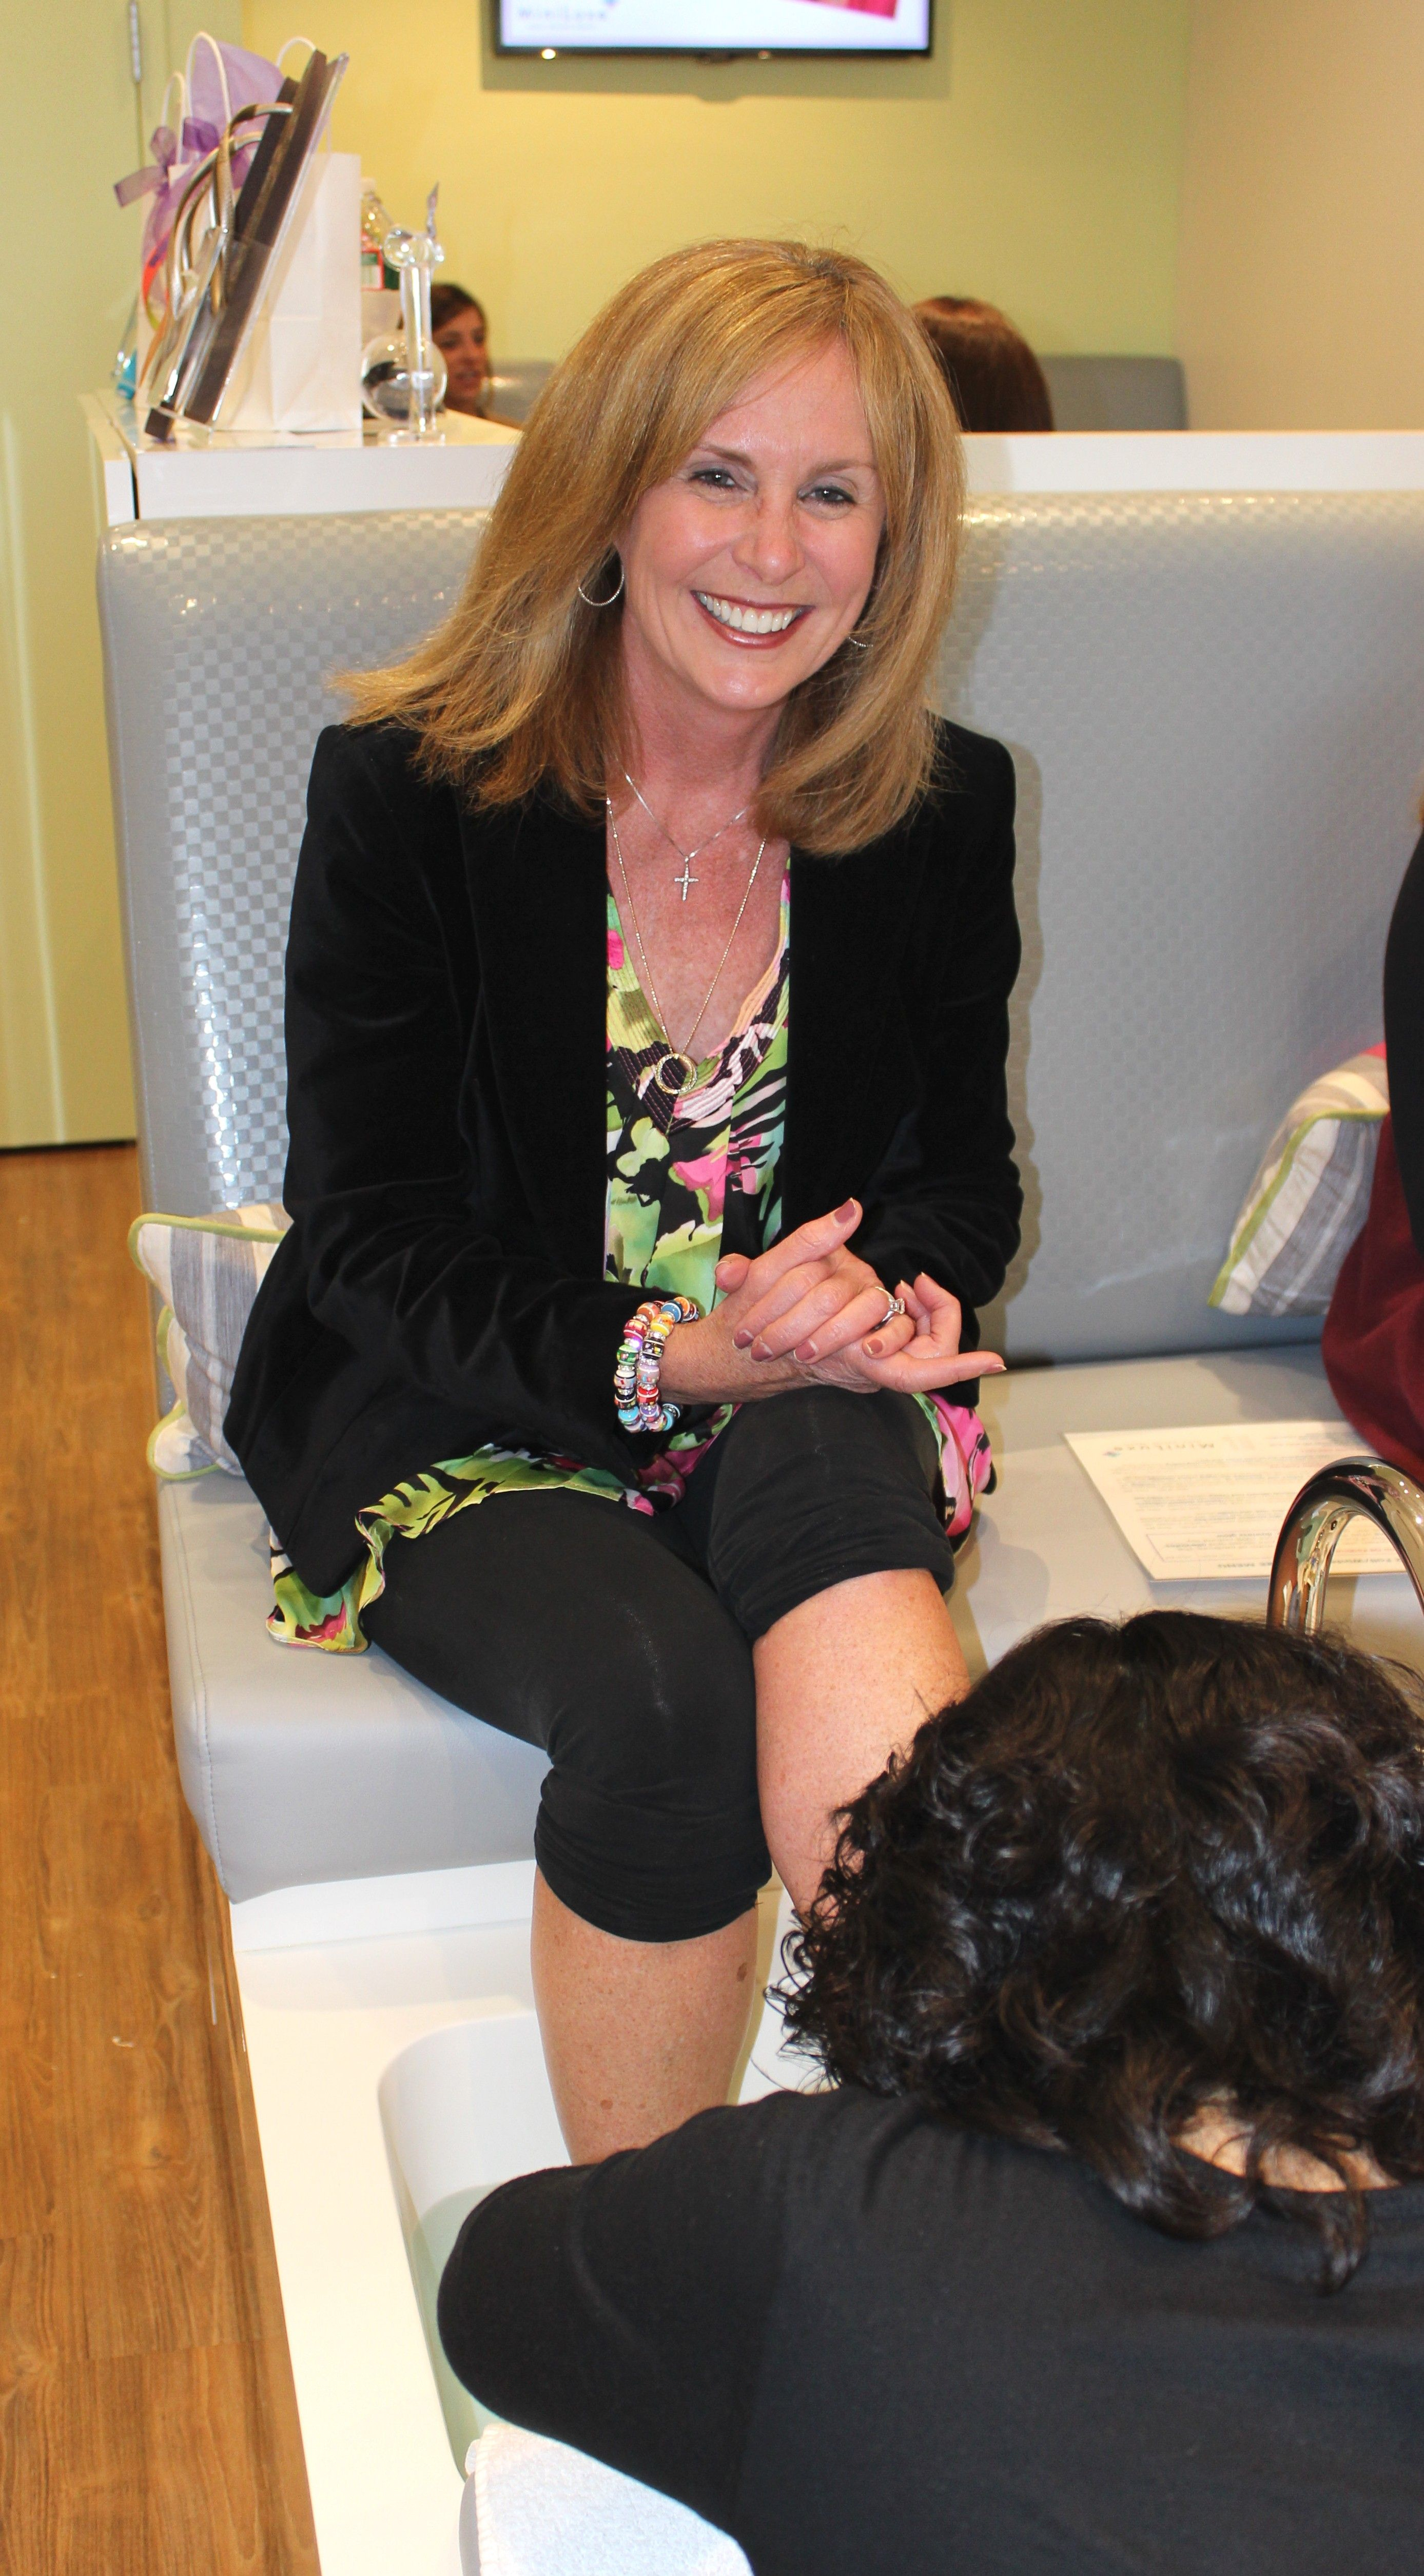 Candy O' Terry from Magic 106.7 getting a pedicure at the Candy O and Friends of Mel event at MiniLuxe in Hingham